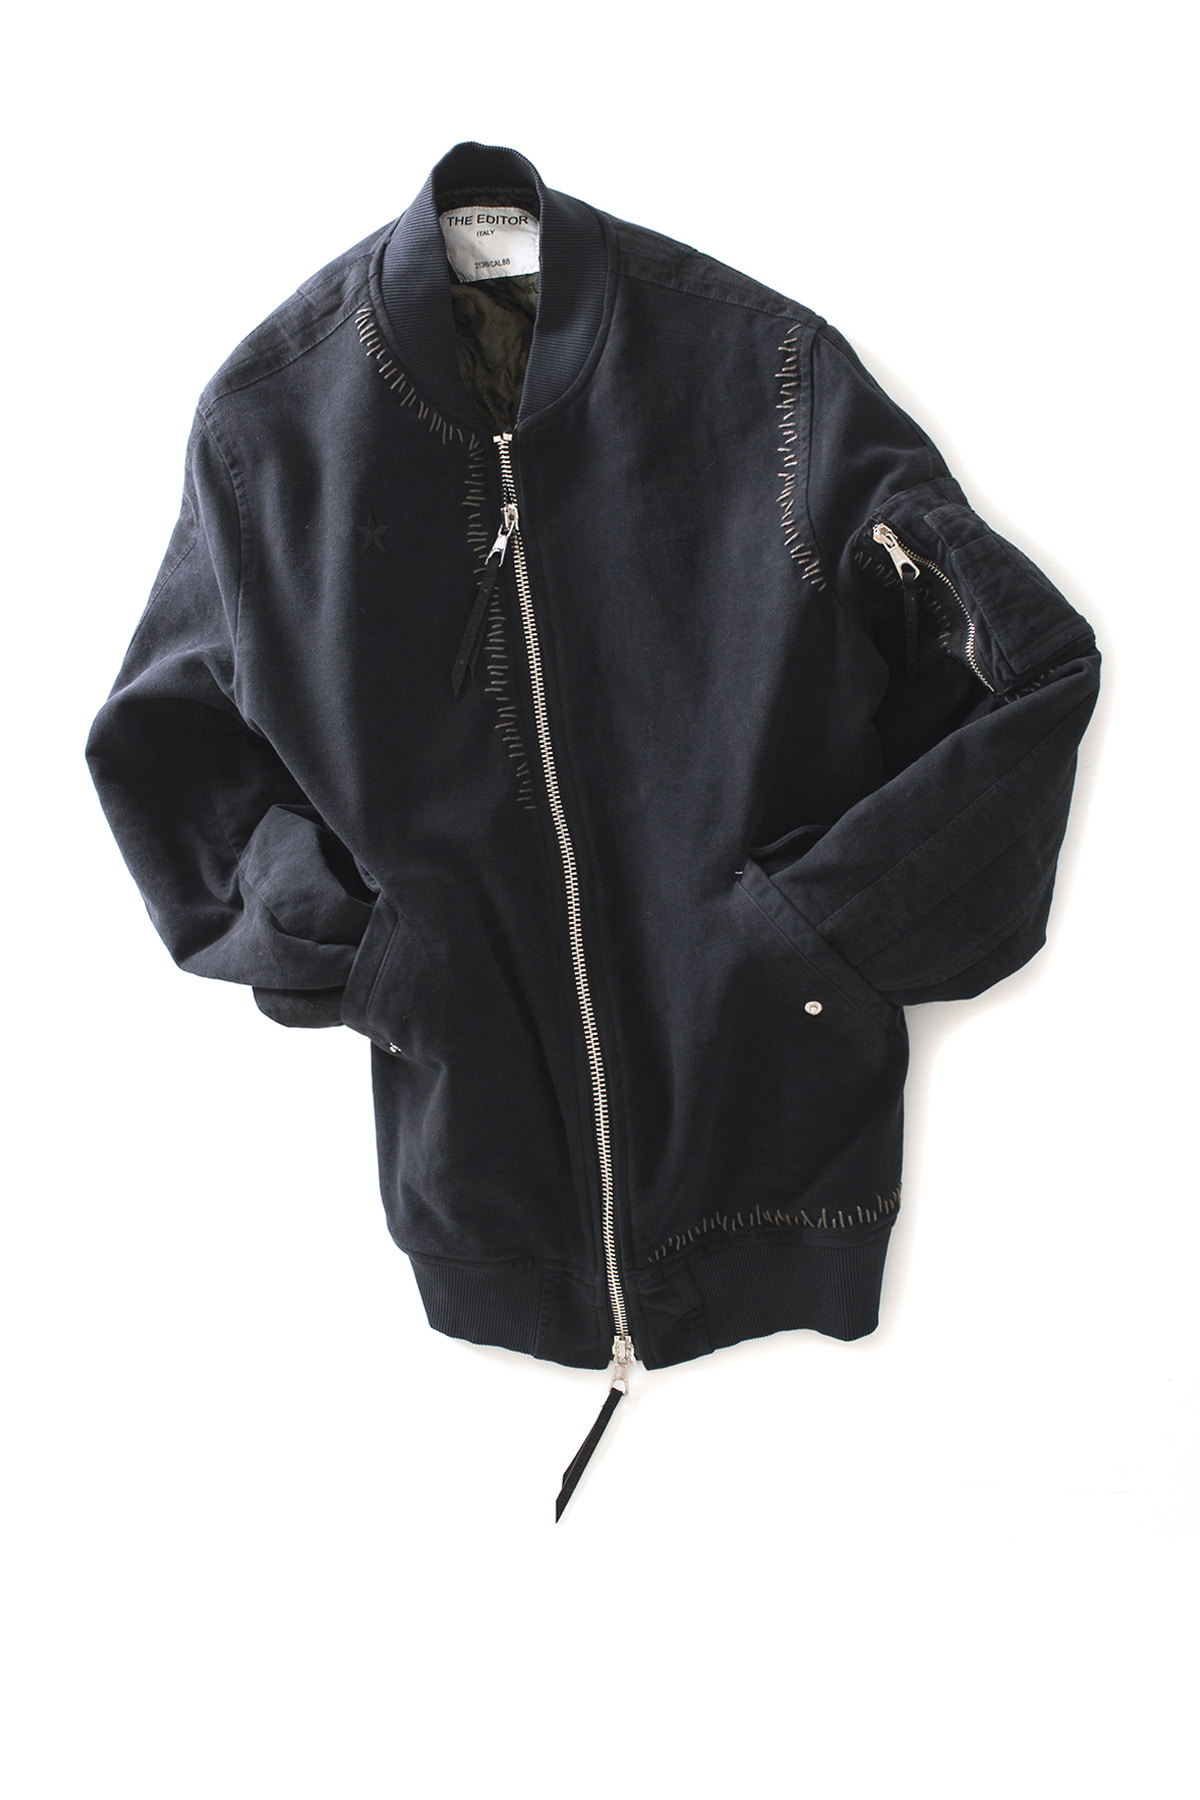 THE EDITOR : Man Sport Blouson (Black)